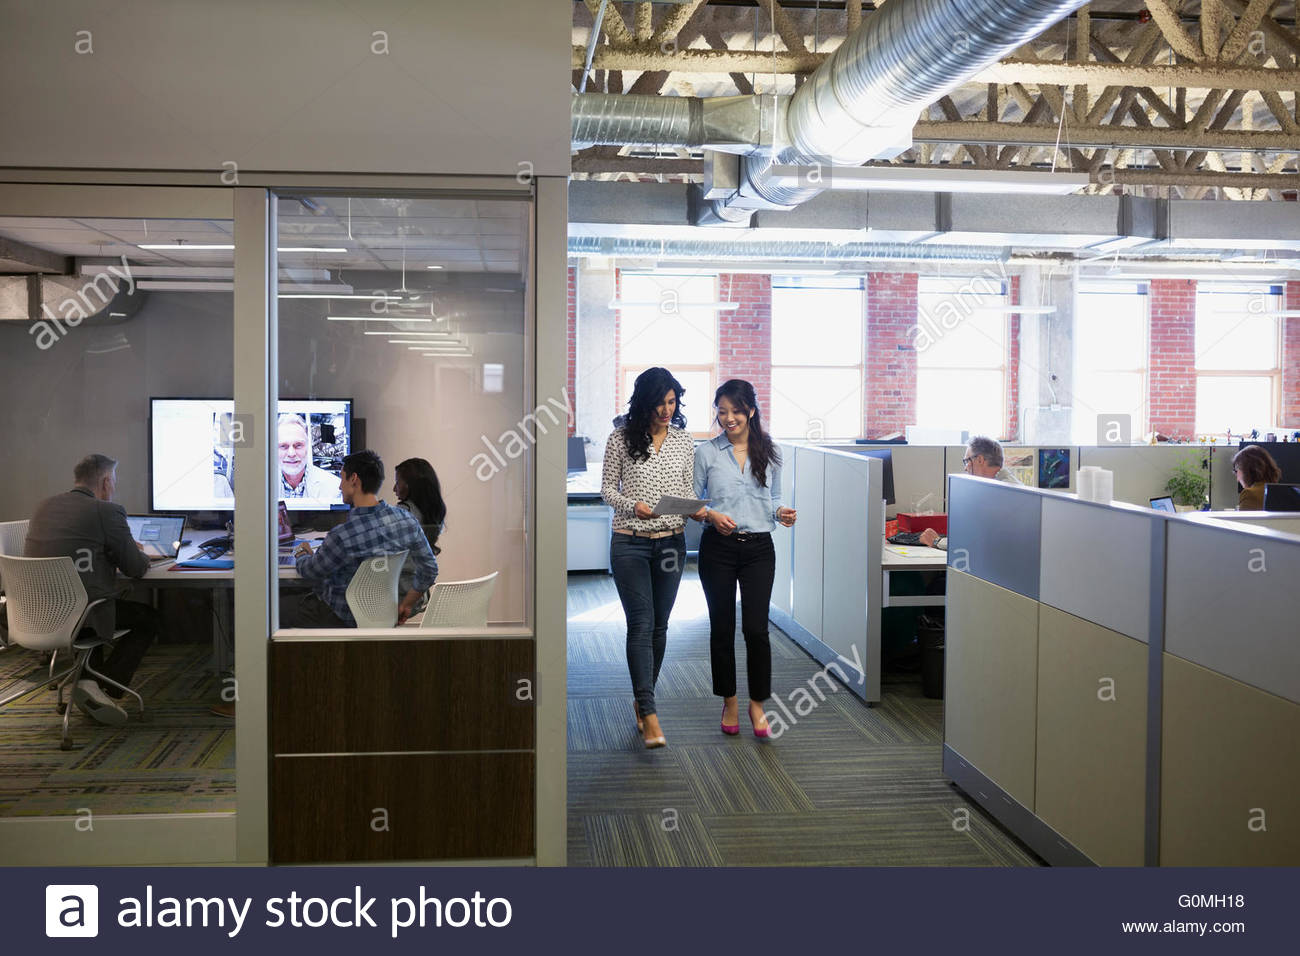 Businesswoman walking by coworkers in video conference - Stock Image